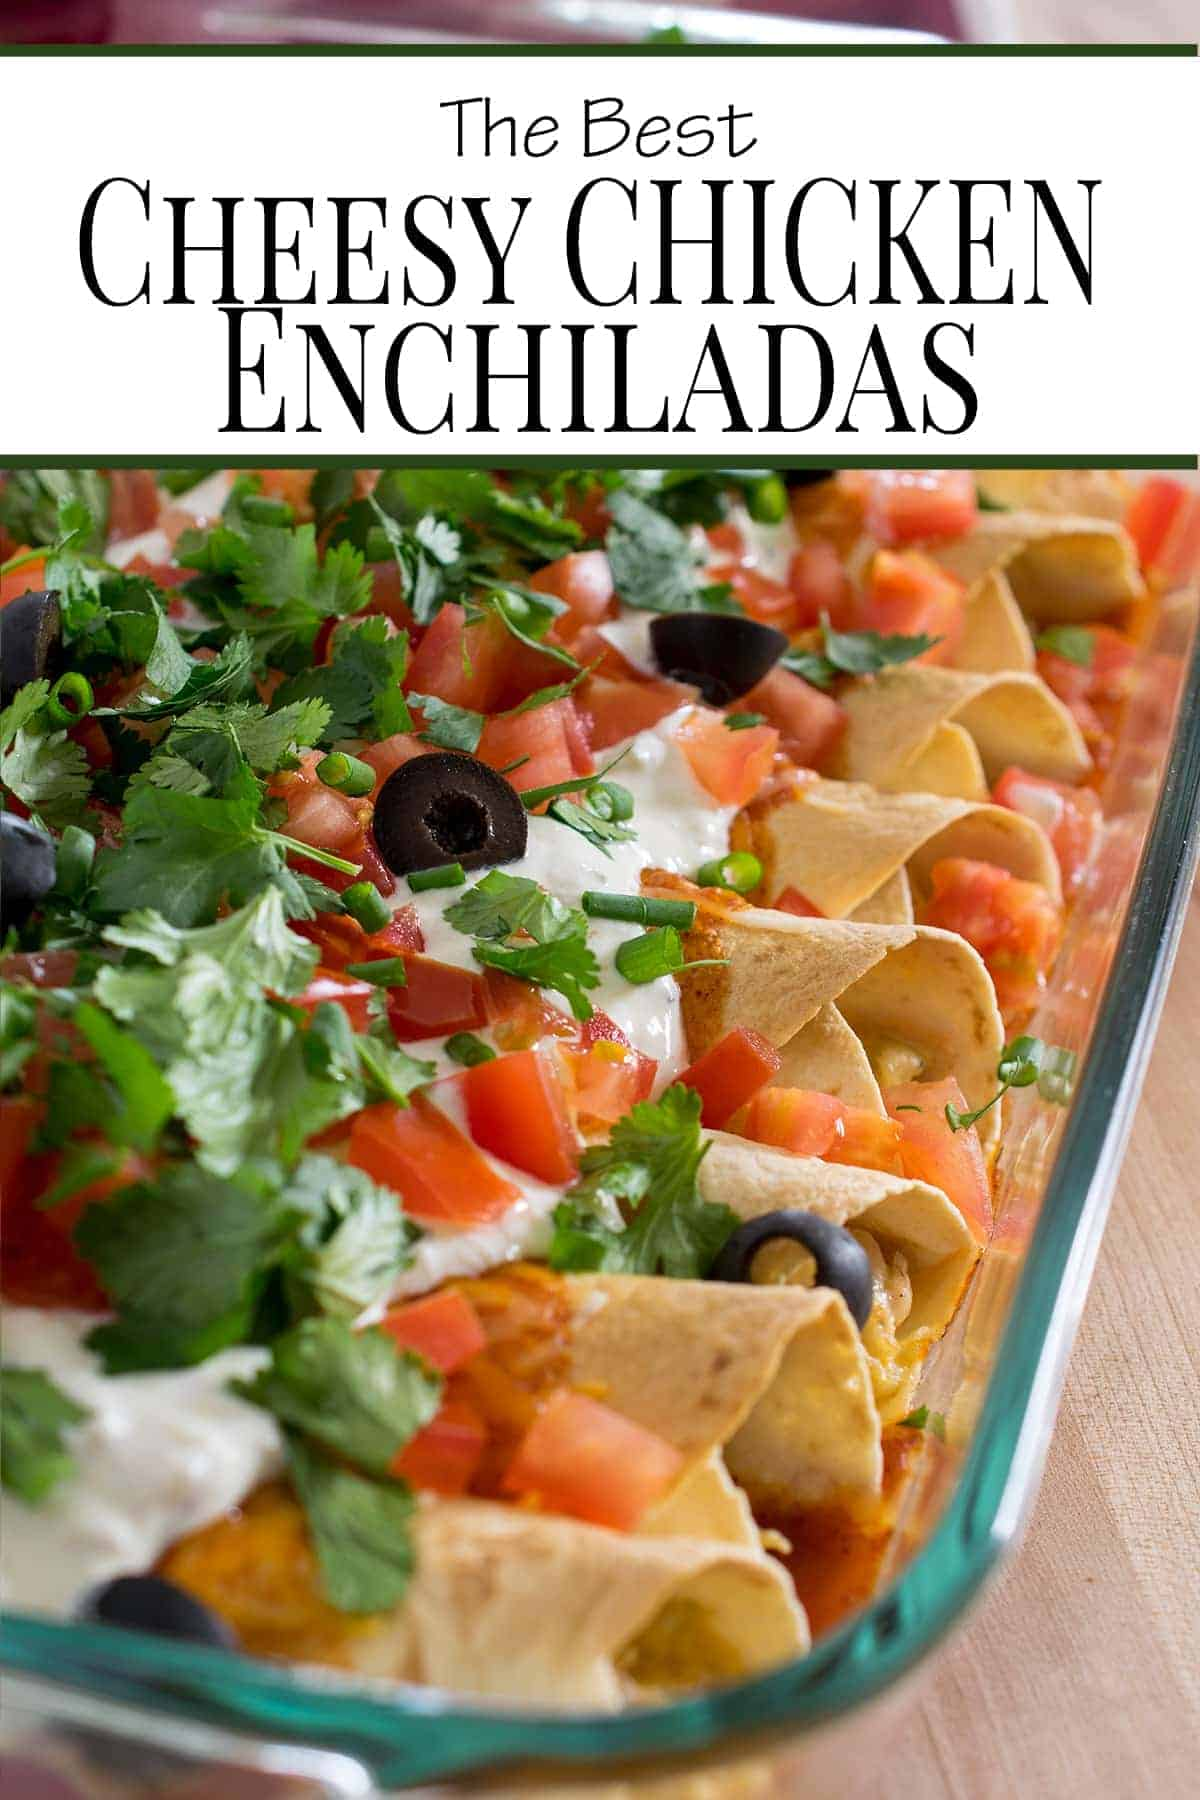 Chicken enchiladas topped with sour cream, pico de gallo, olives and sour cream in baking dish.